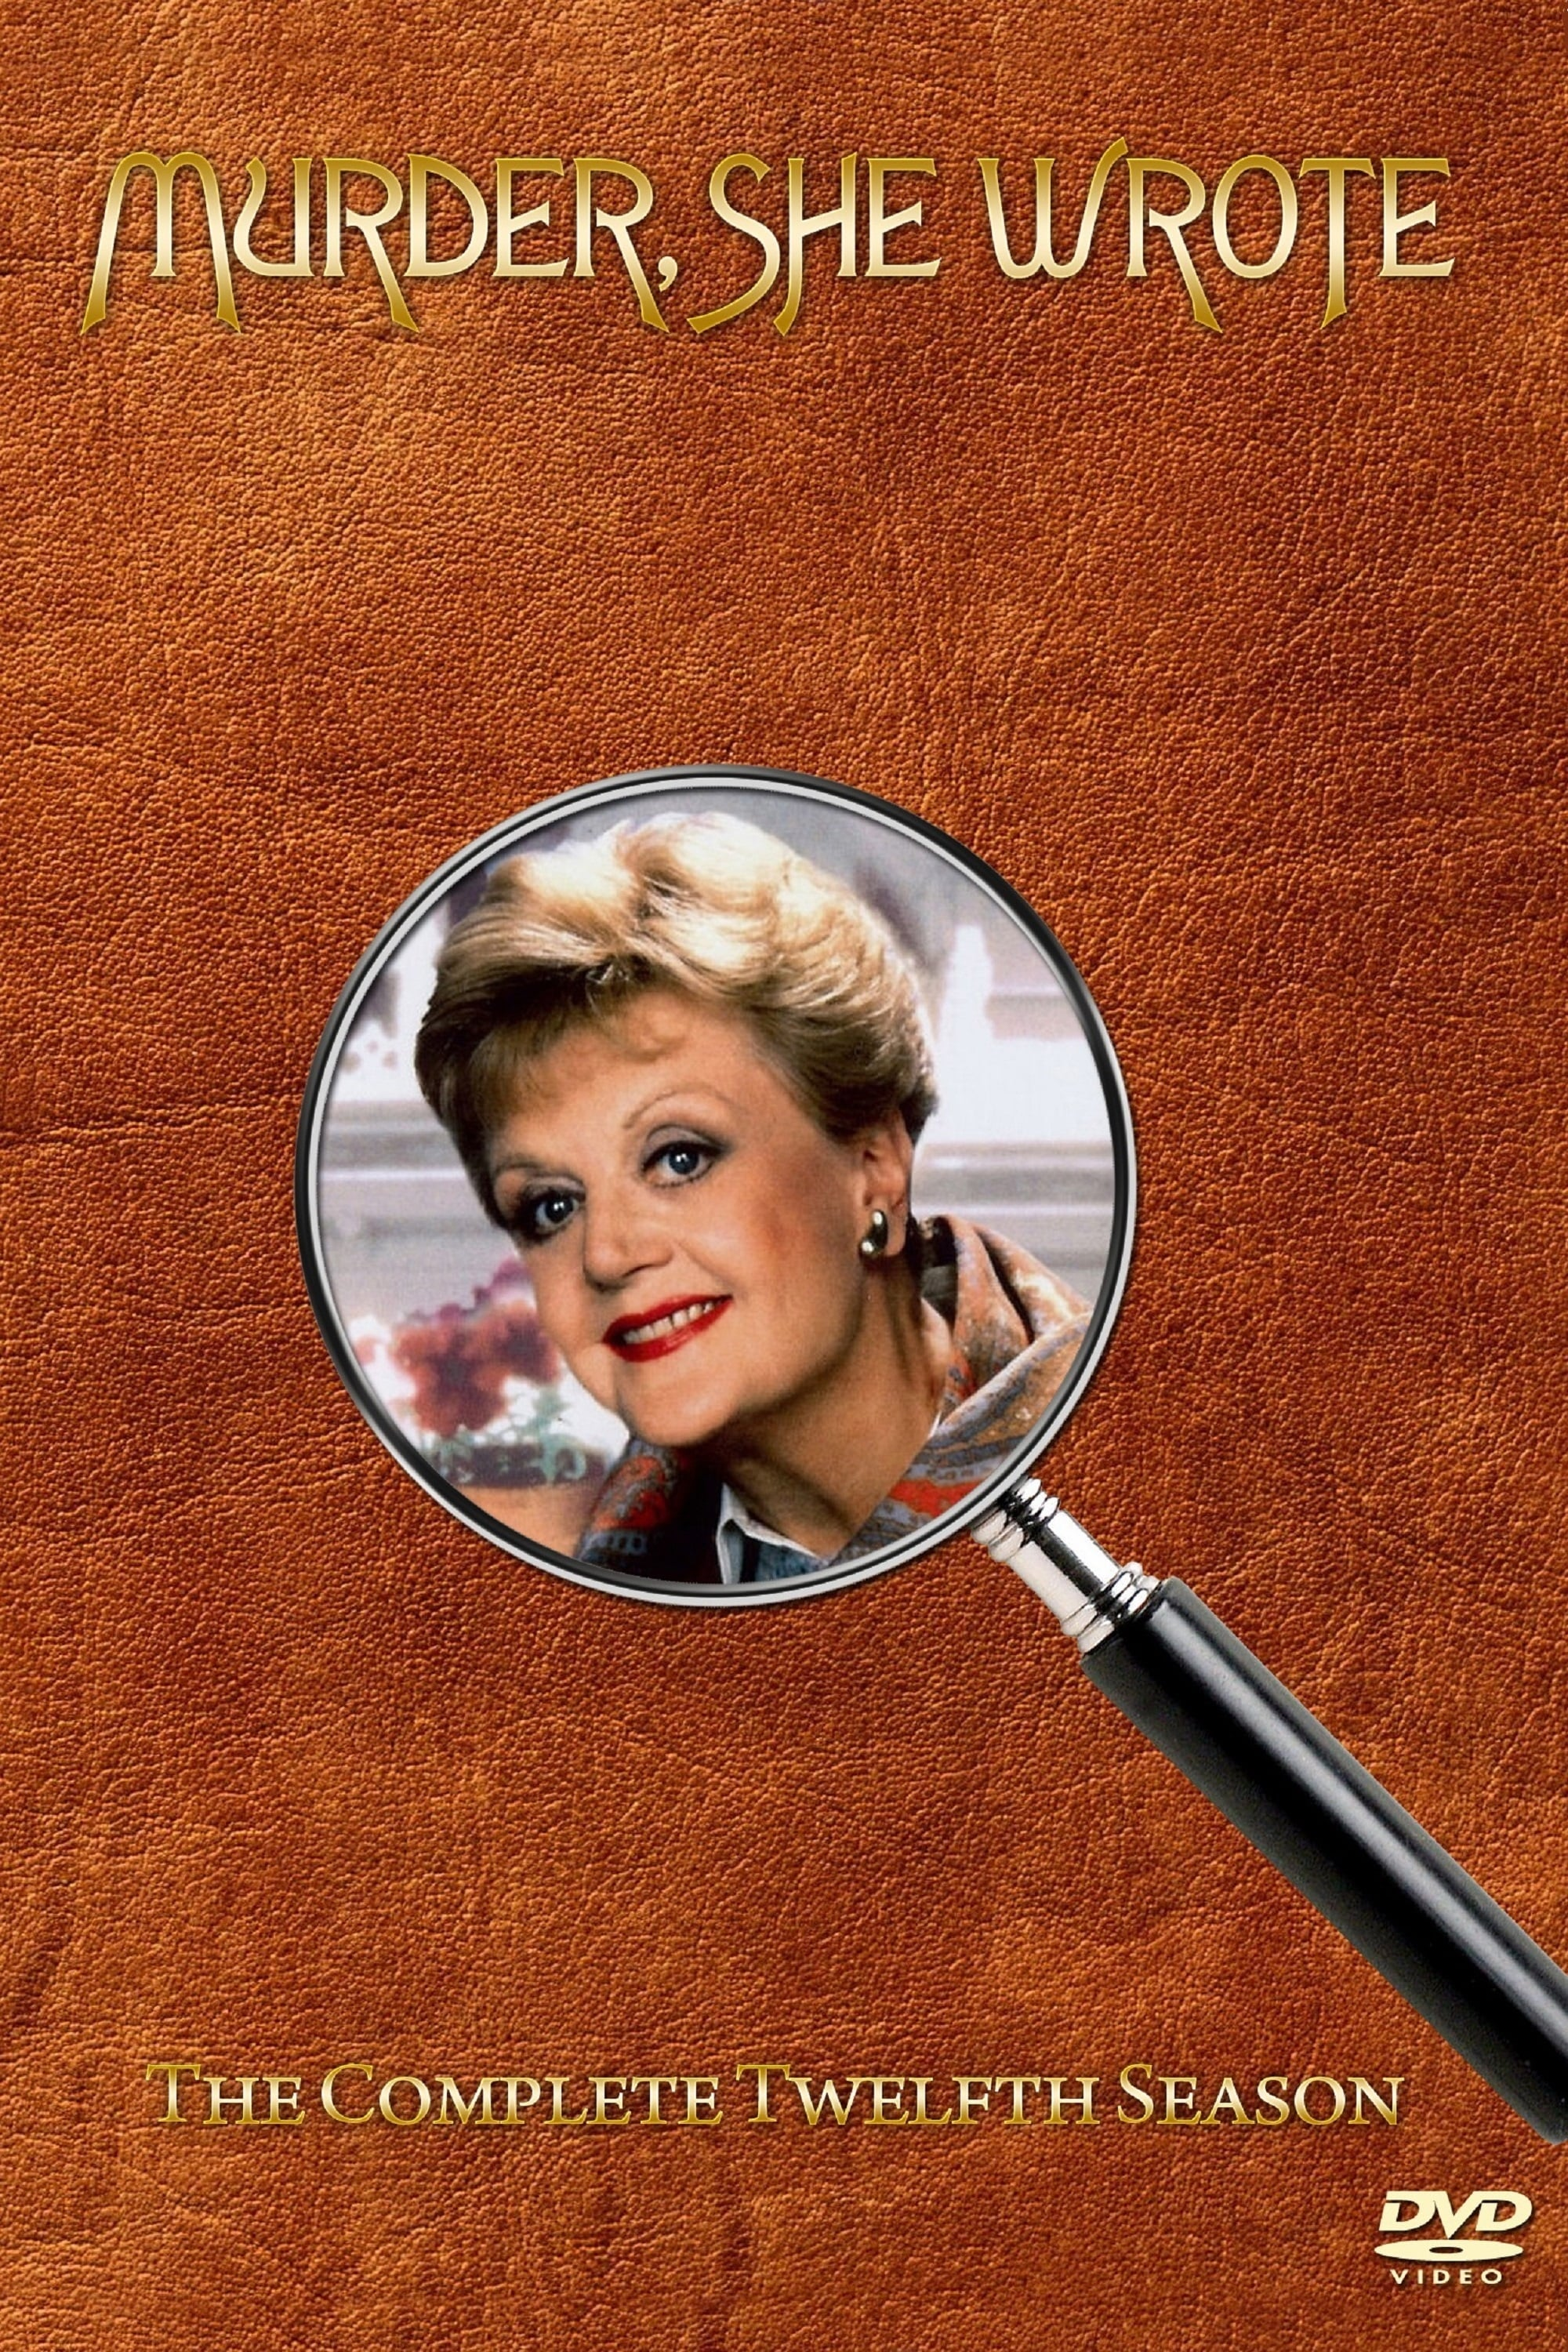 Murder, She Wrote Season 12